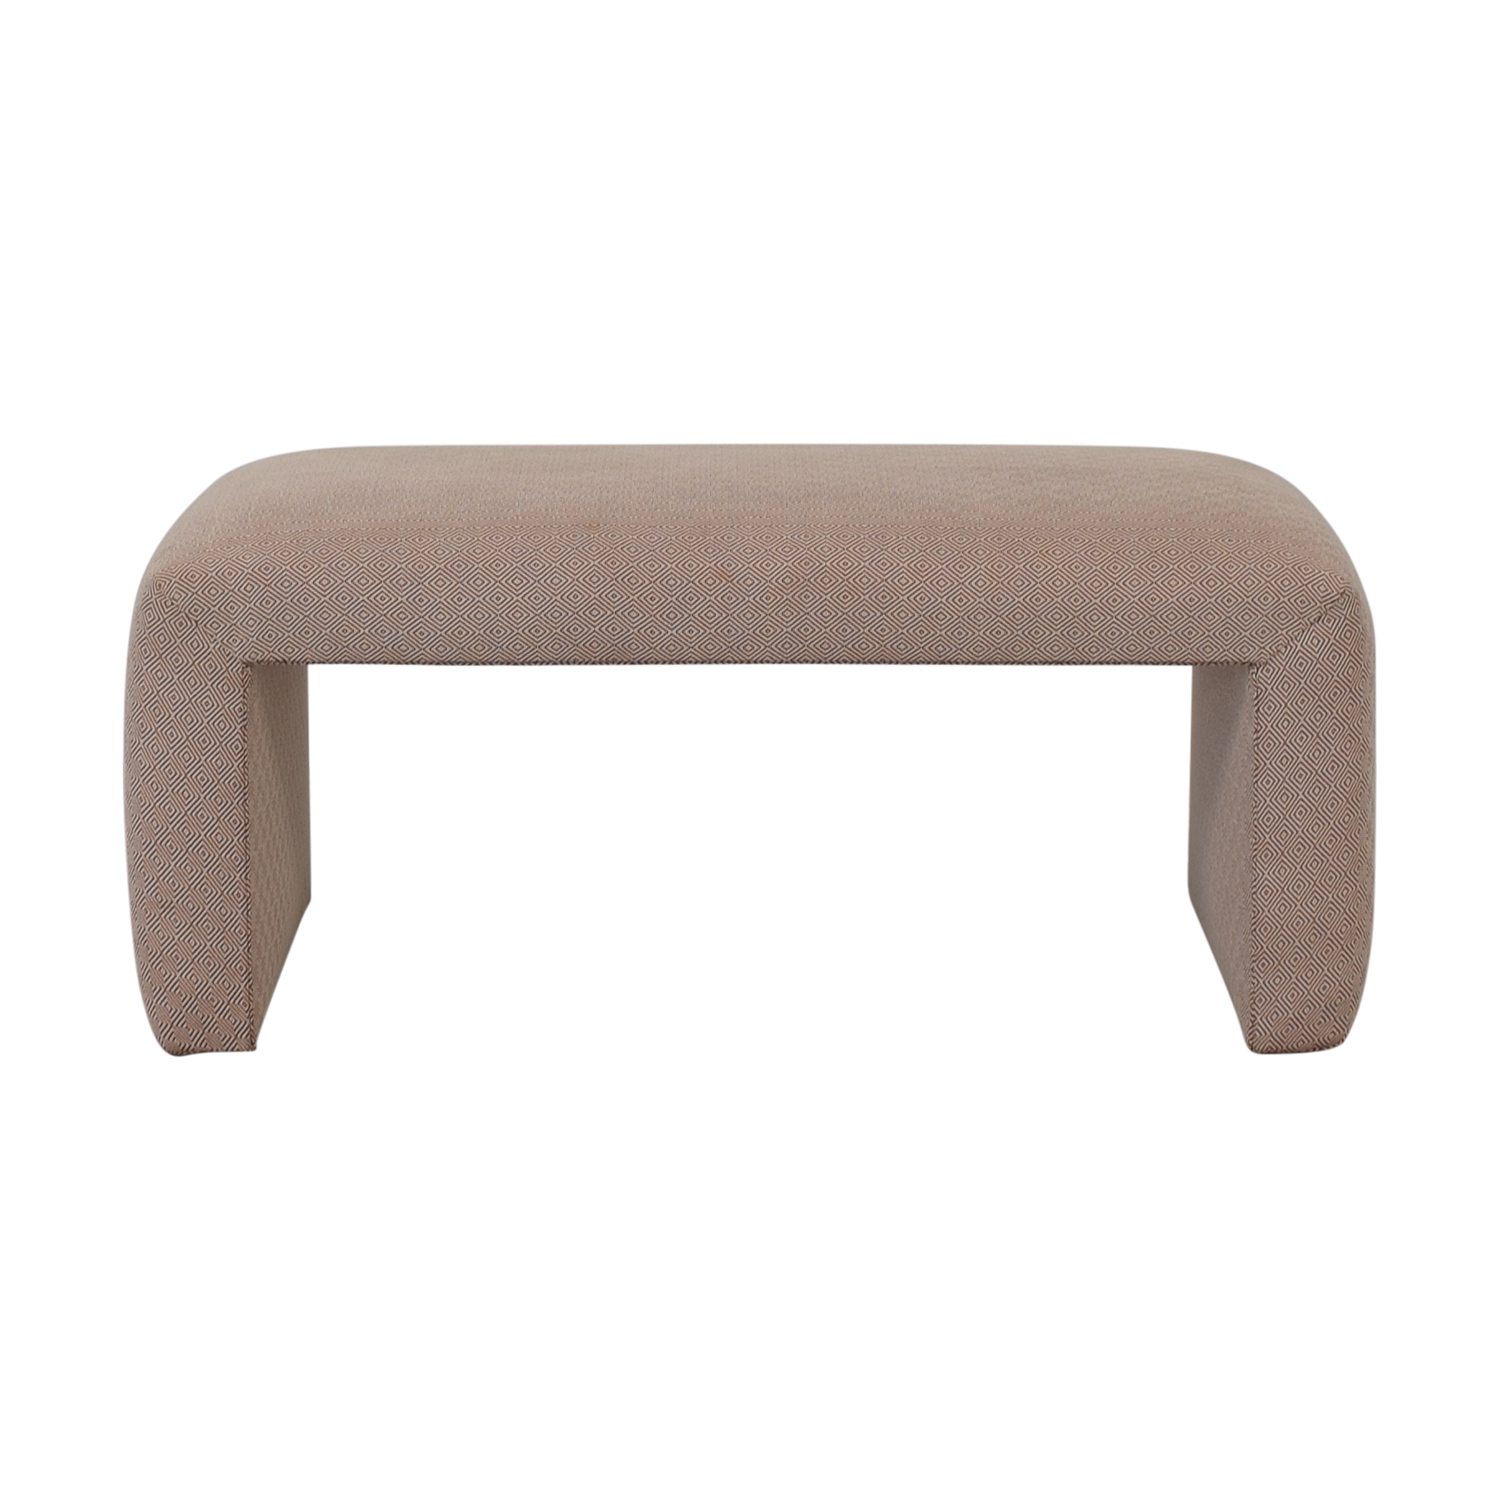 Custom Upholstered Bench dimensions